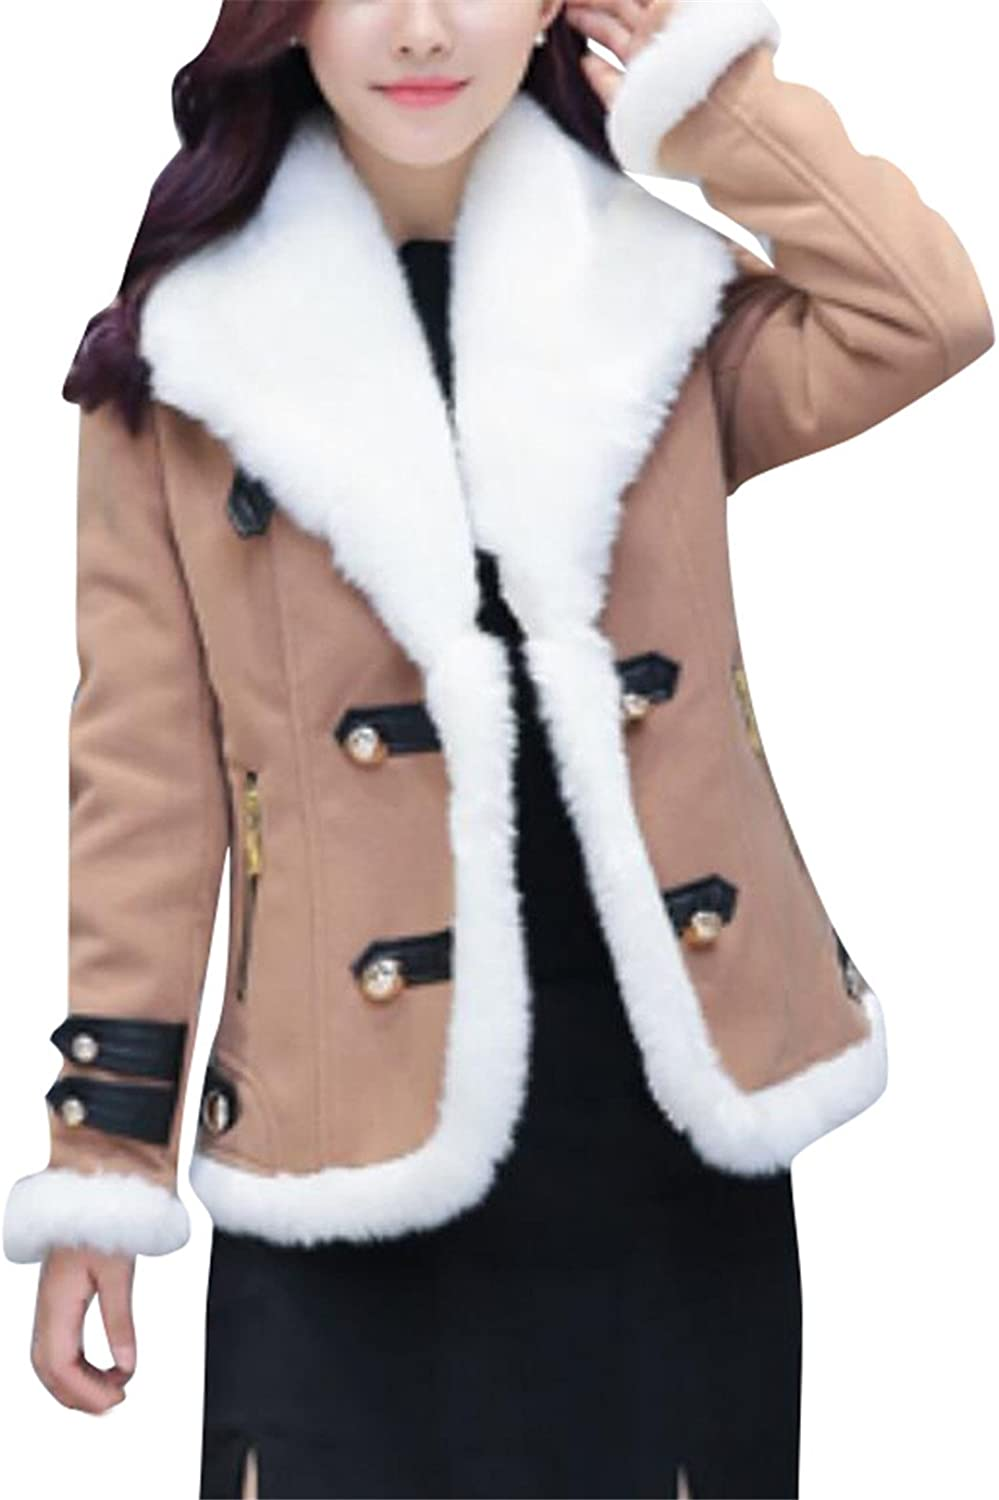 KLJRWomen Winter Sherpa Lined Thick Wool Blend Leather Jacket